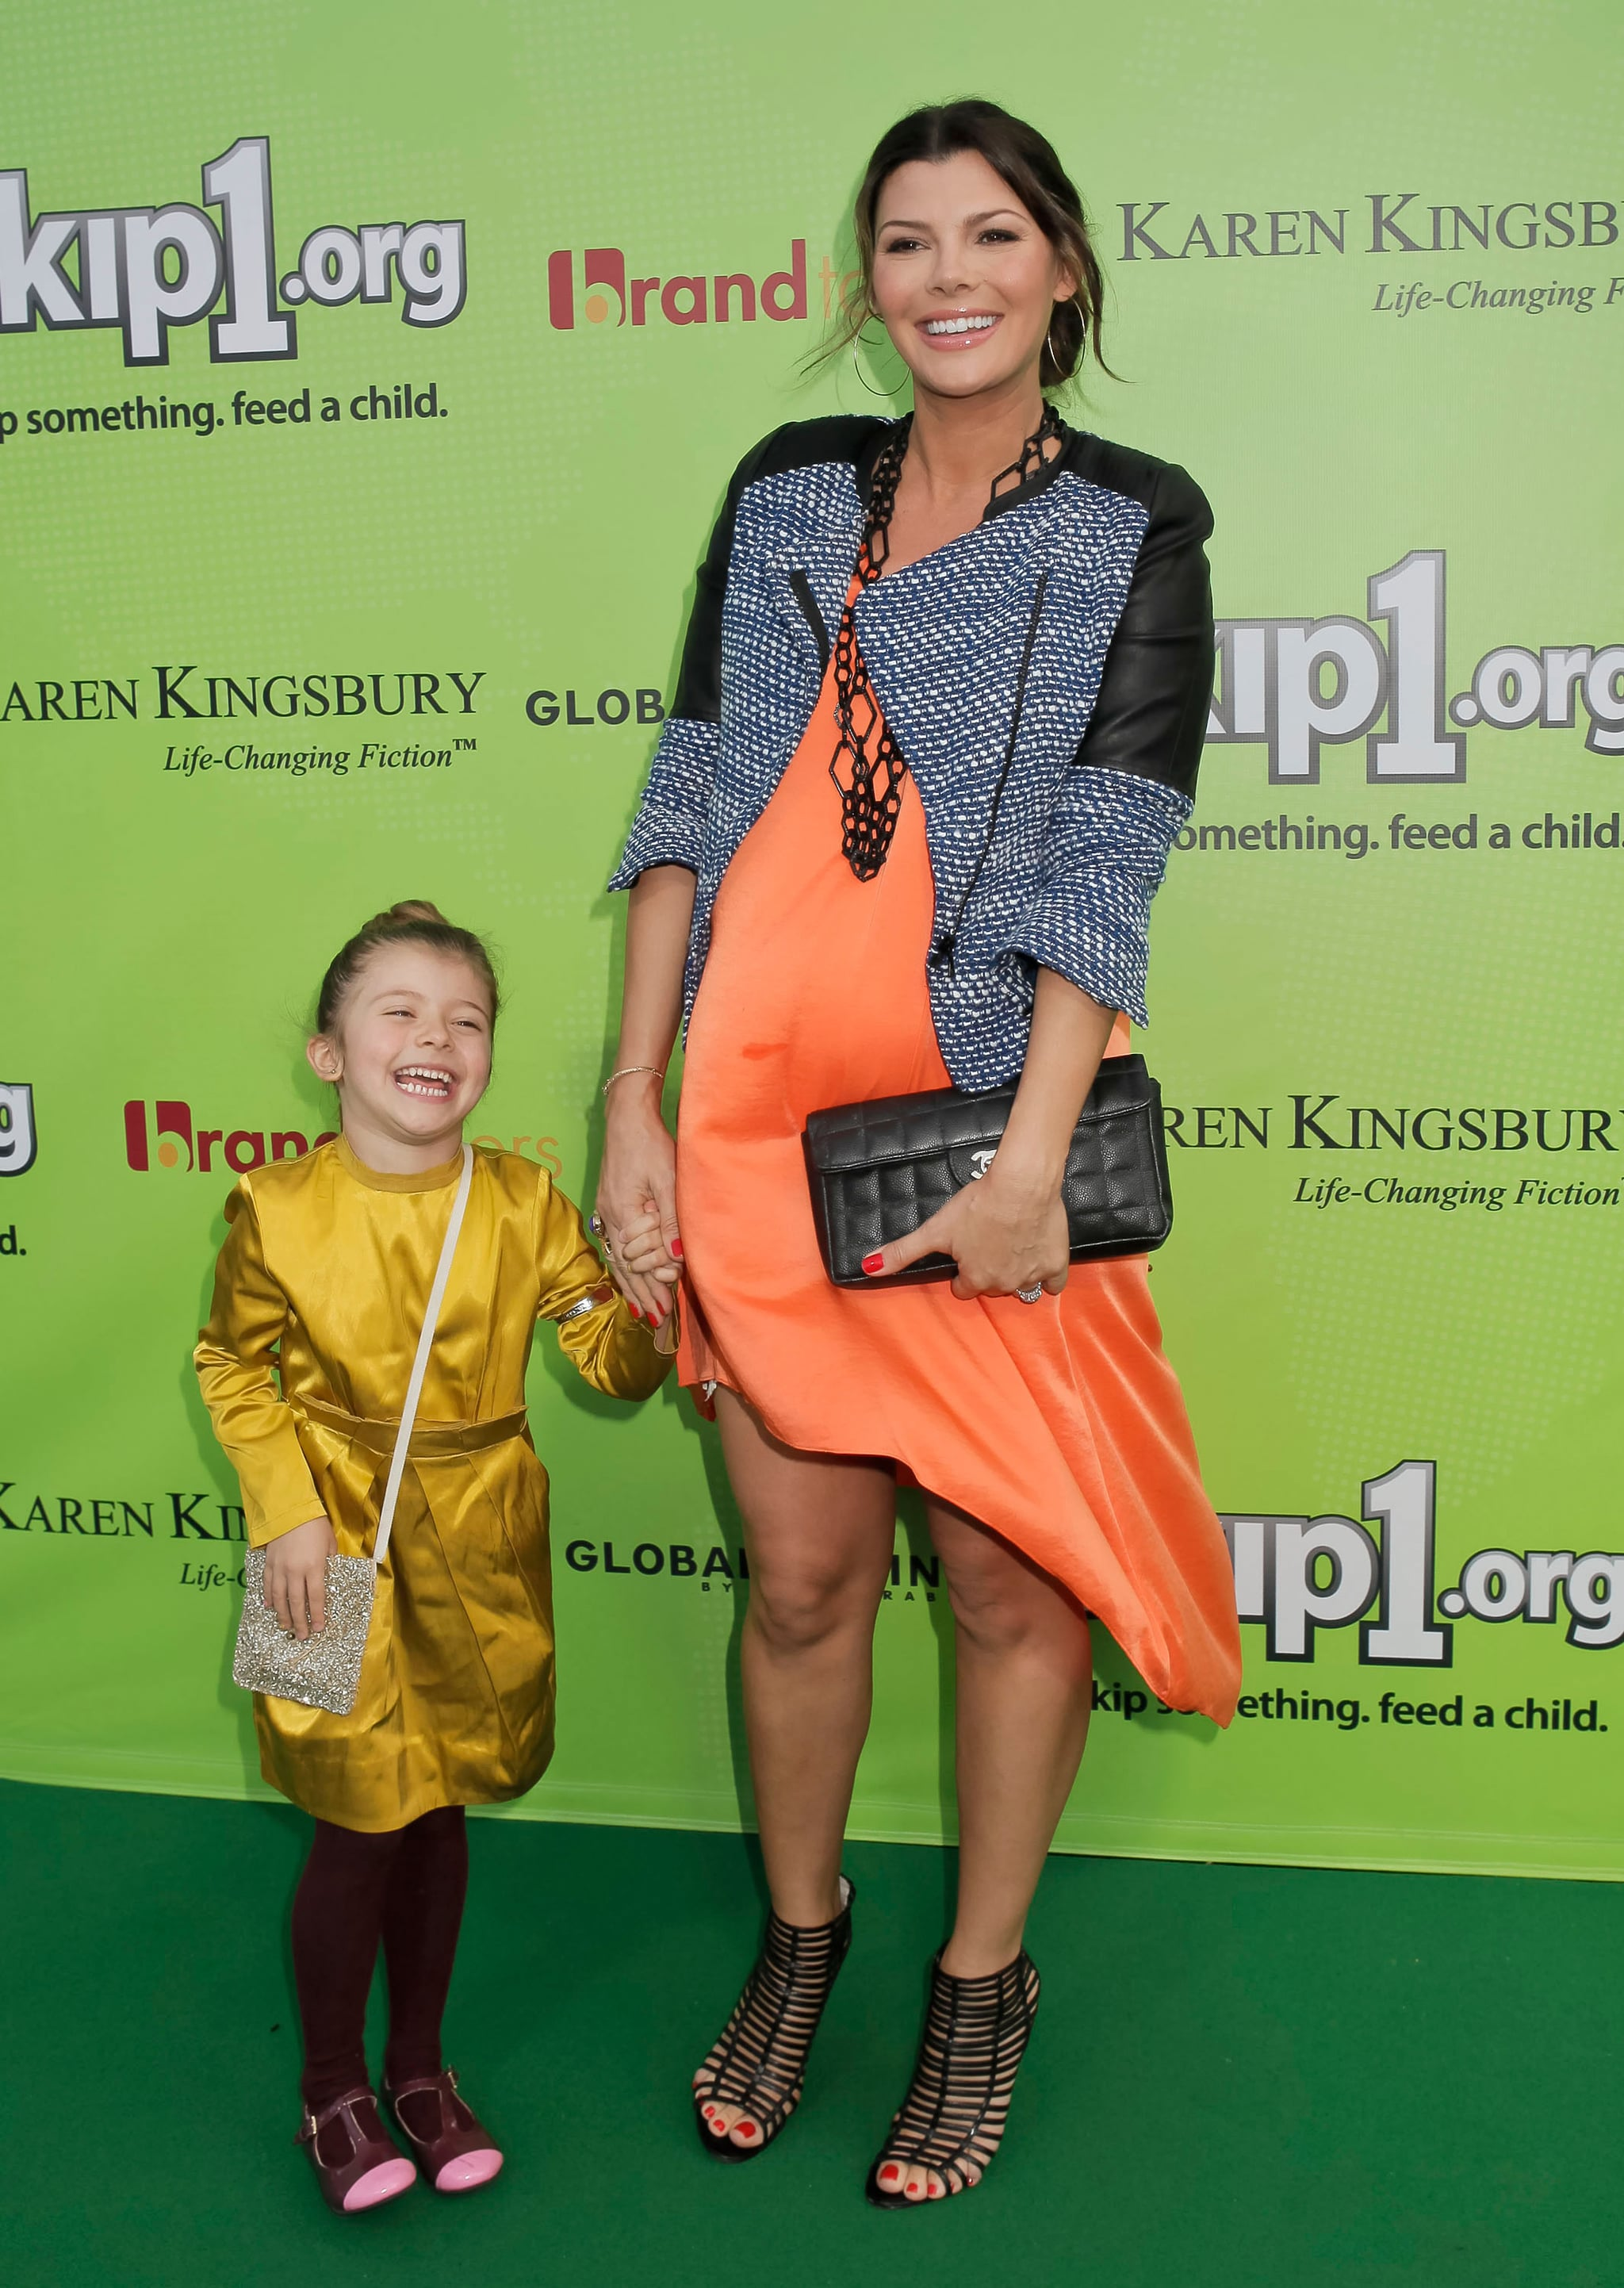 On July 11, Ali Landry gave birth to her third child, Valentin Monteverde, with husband Alejandro Monteverde. The couple already have two children, 2-year-old Marcelo, and 6-year-old Estrela.